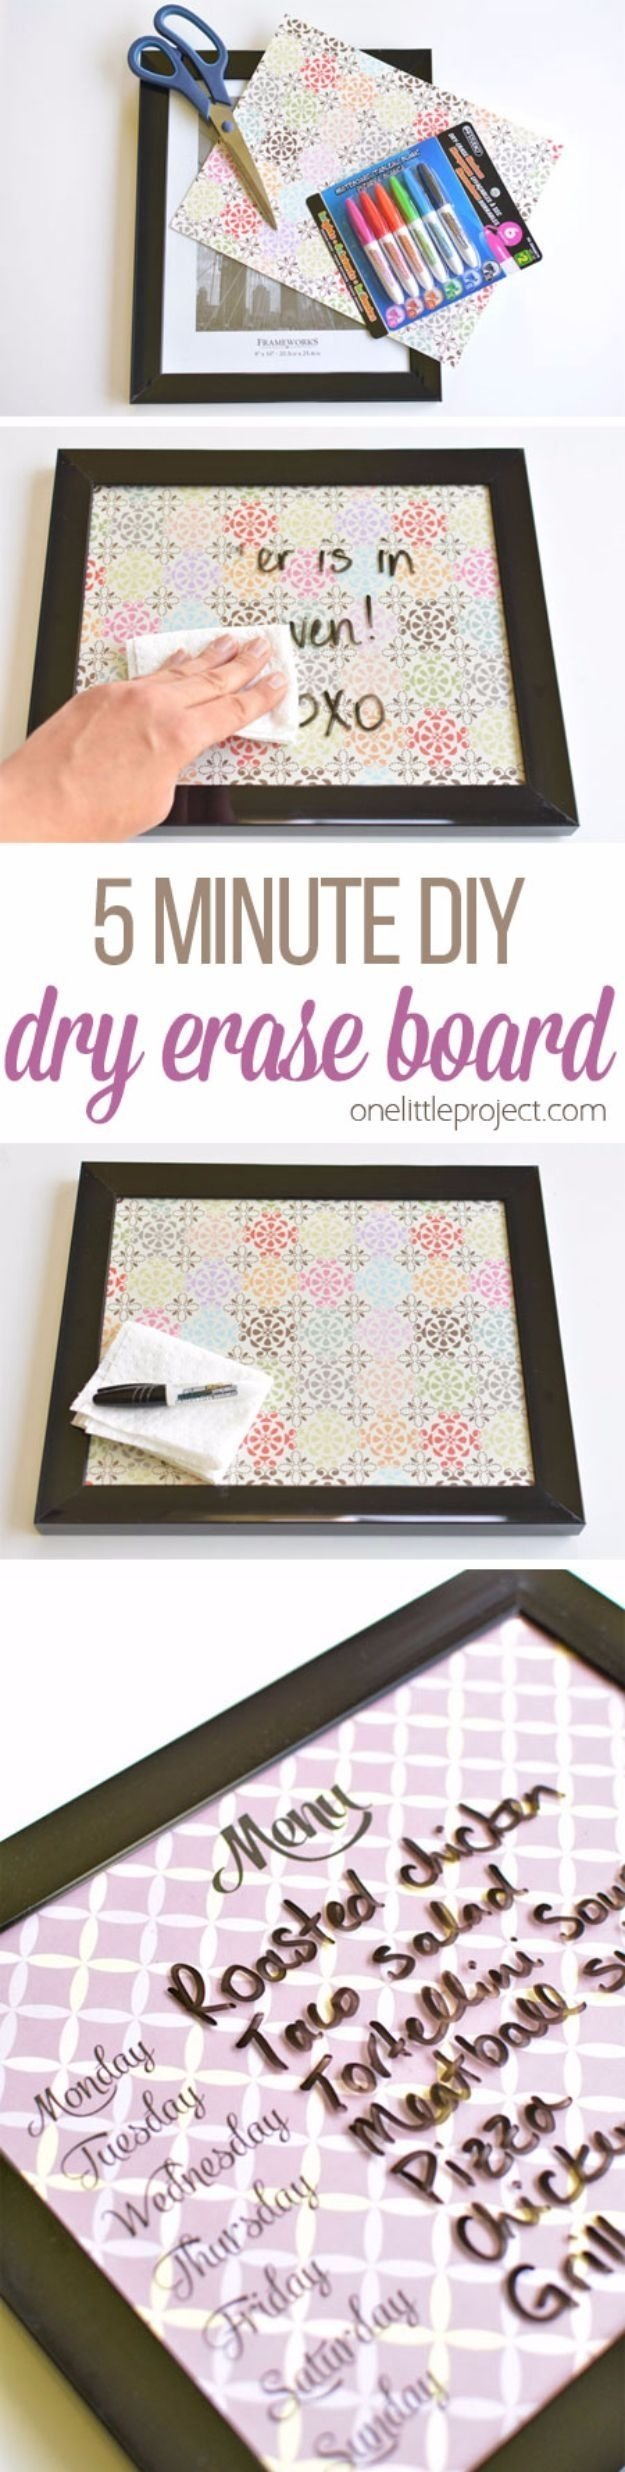 10 Perfect Craft Ideas To Sell From Home